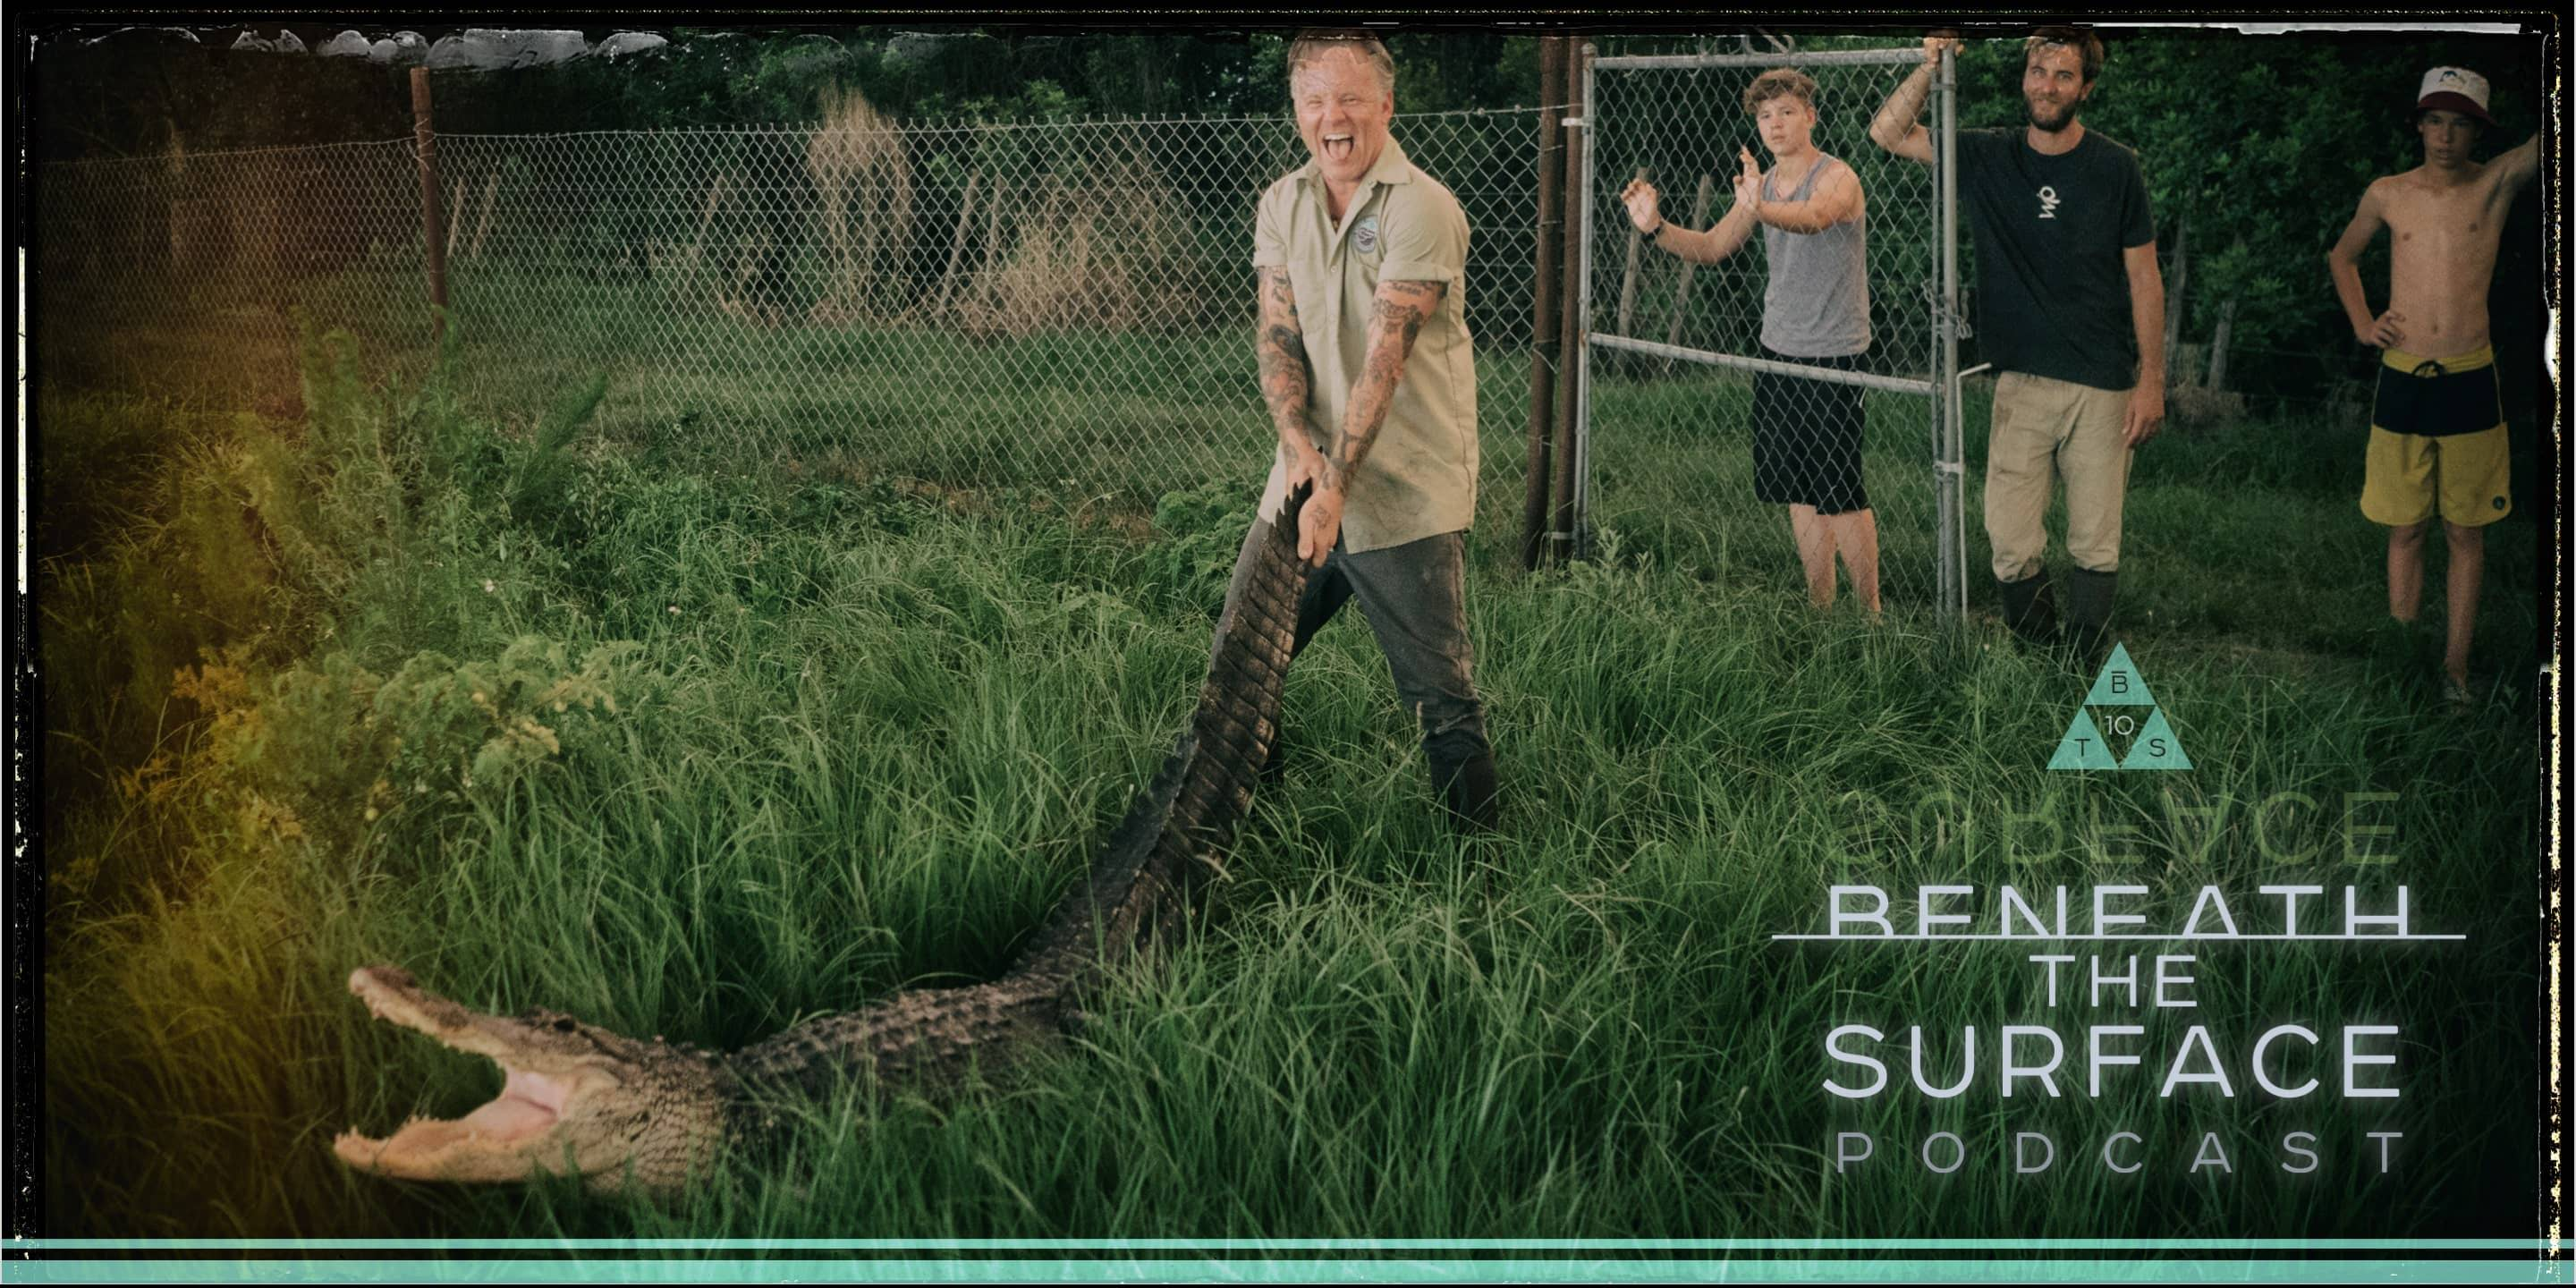 Gatorproof   Episode 6   Beneath the Surface Podcast